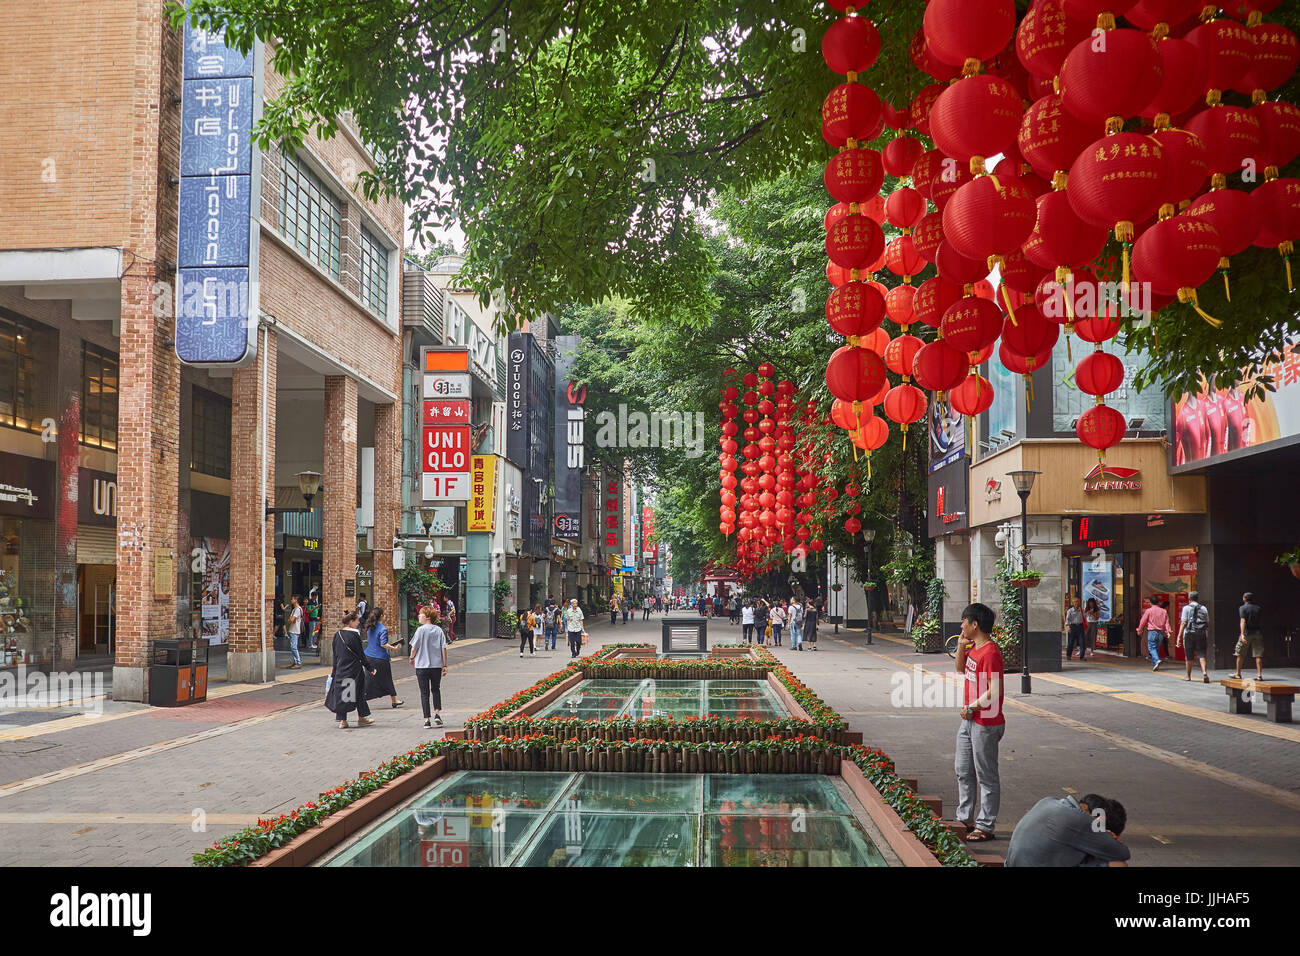 Guangzhou street life with people shopping in Beijing Lu main shopping street, Guangzhou, China - Stock Image